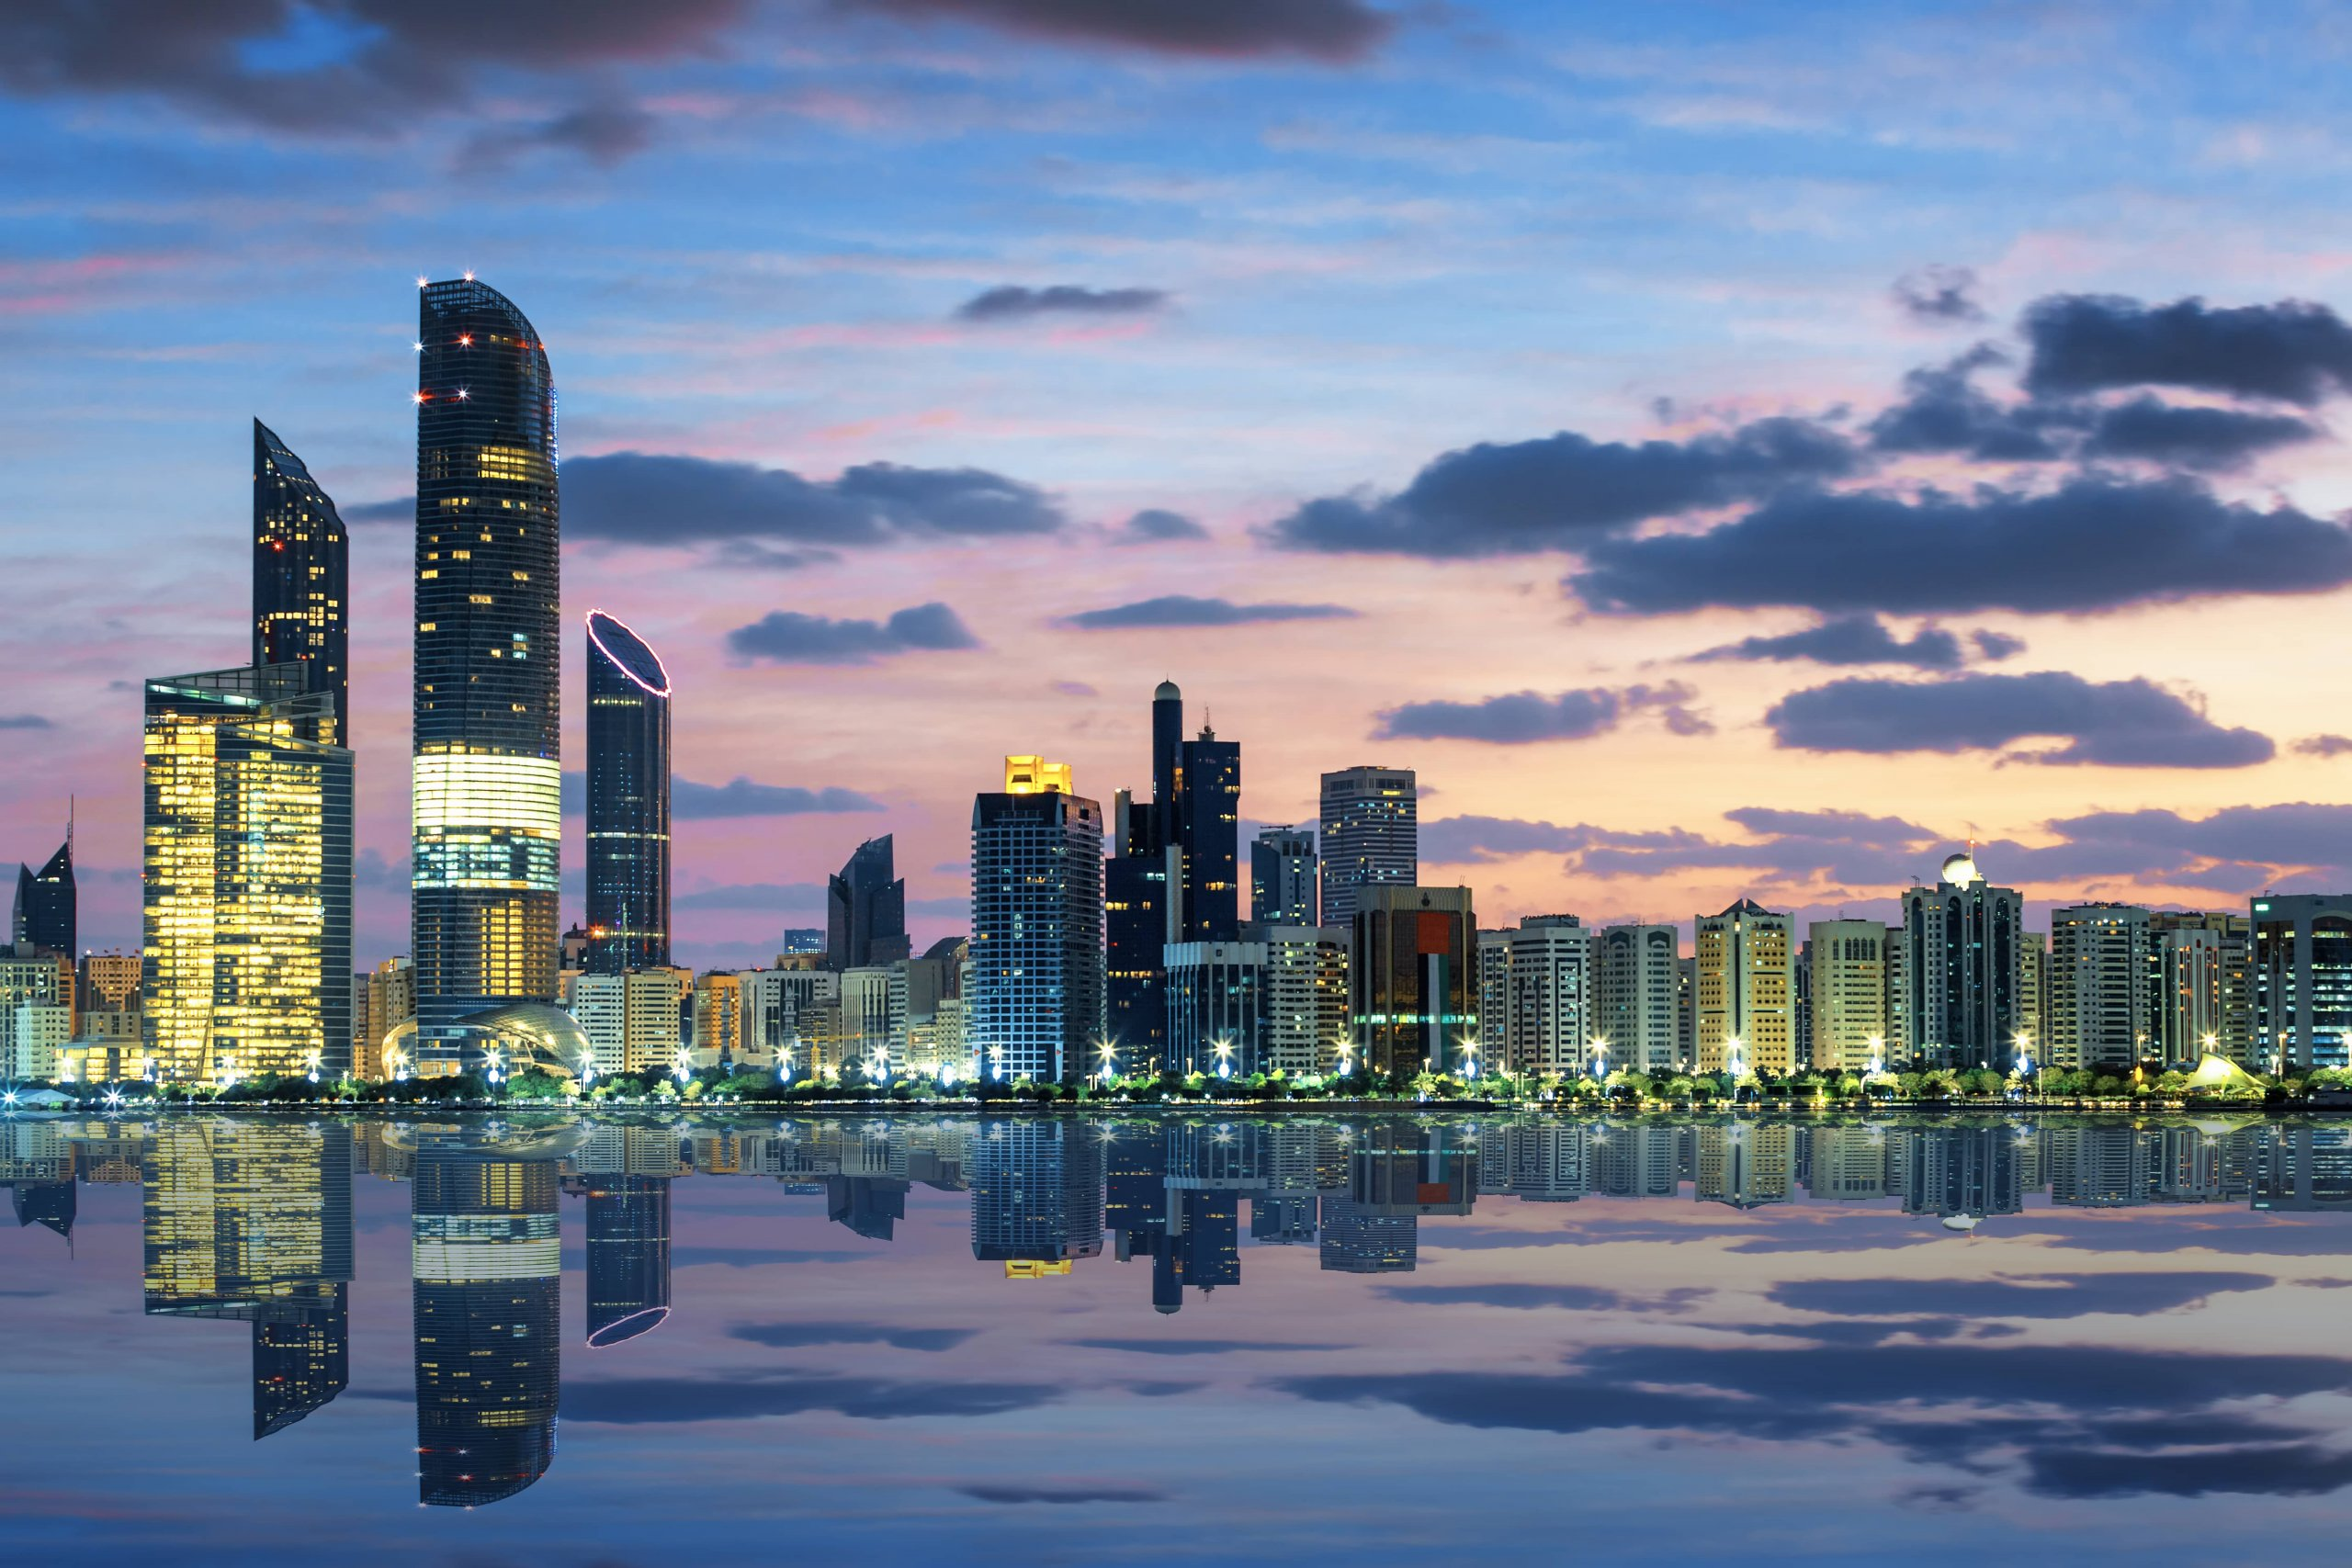 A PRODUCTION HAVEN: THE 6 BEST REASONS TO FILM IN ABU DHABI